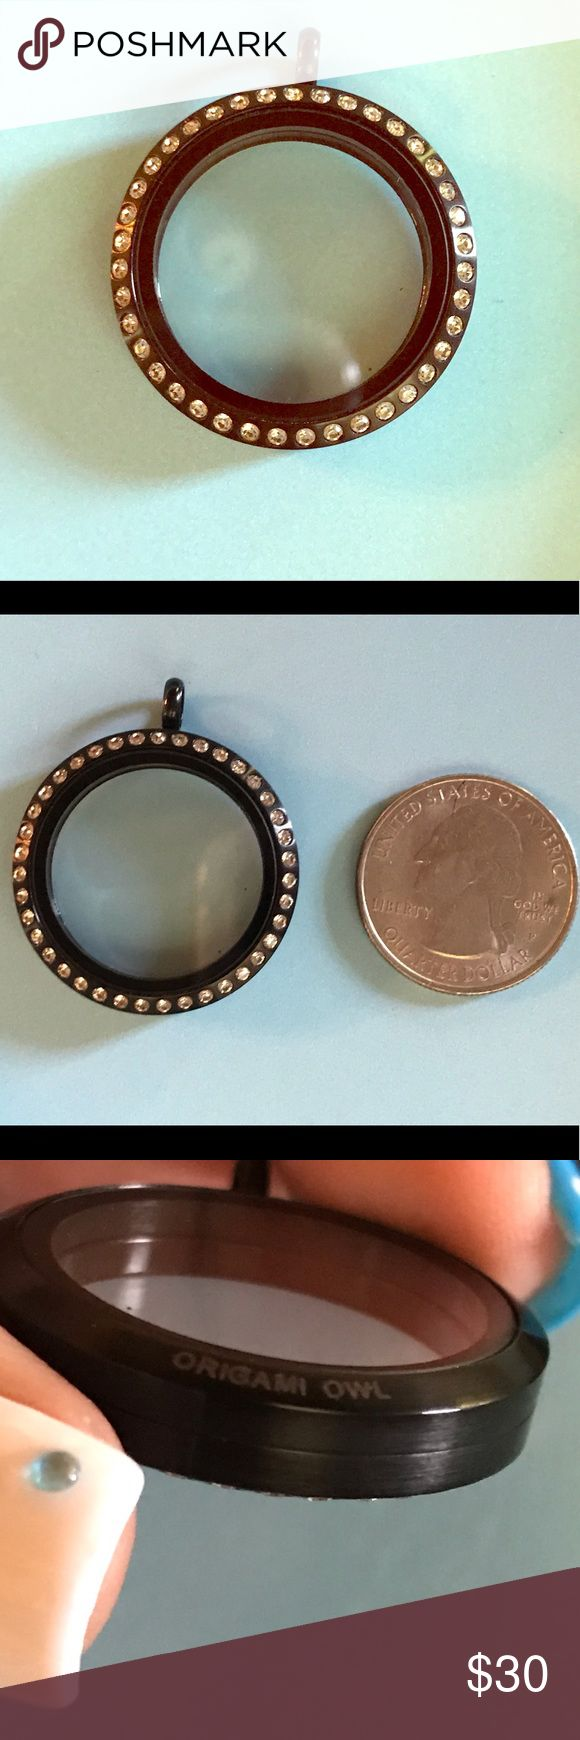 Origami Owl Large Black Locket w Crystals NEW! NEW w box! Large Black Locket w C...